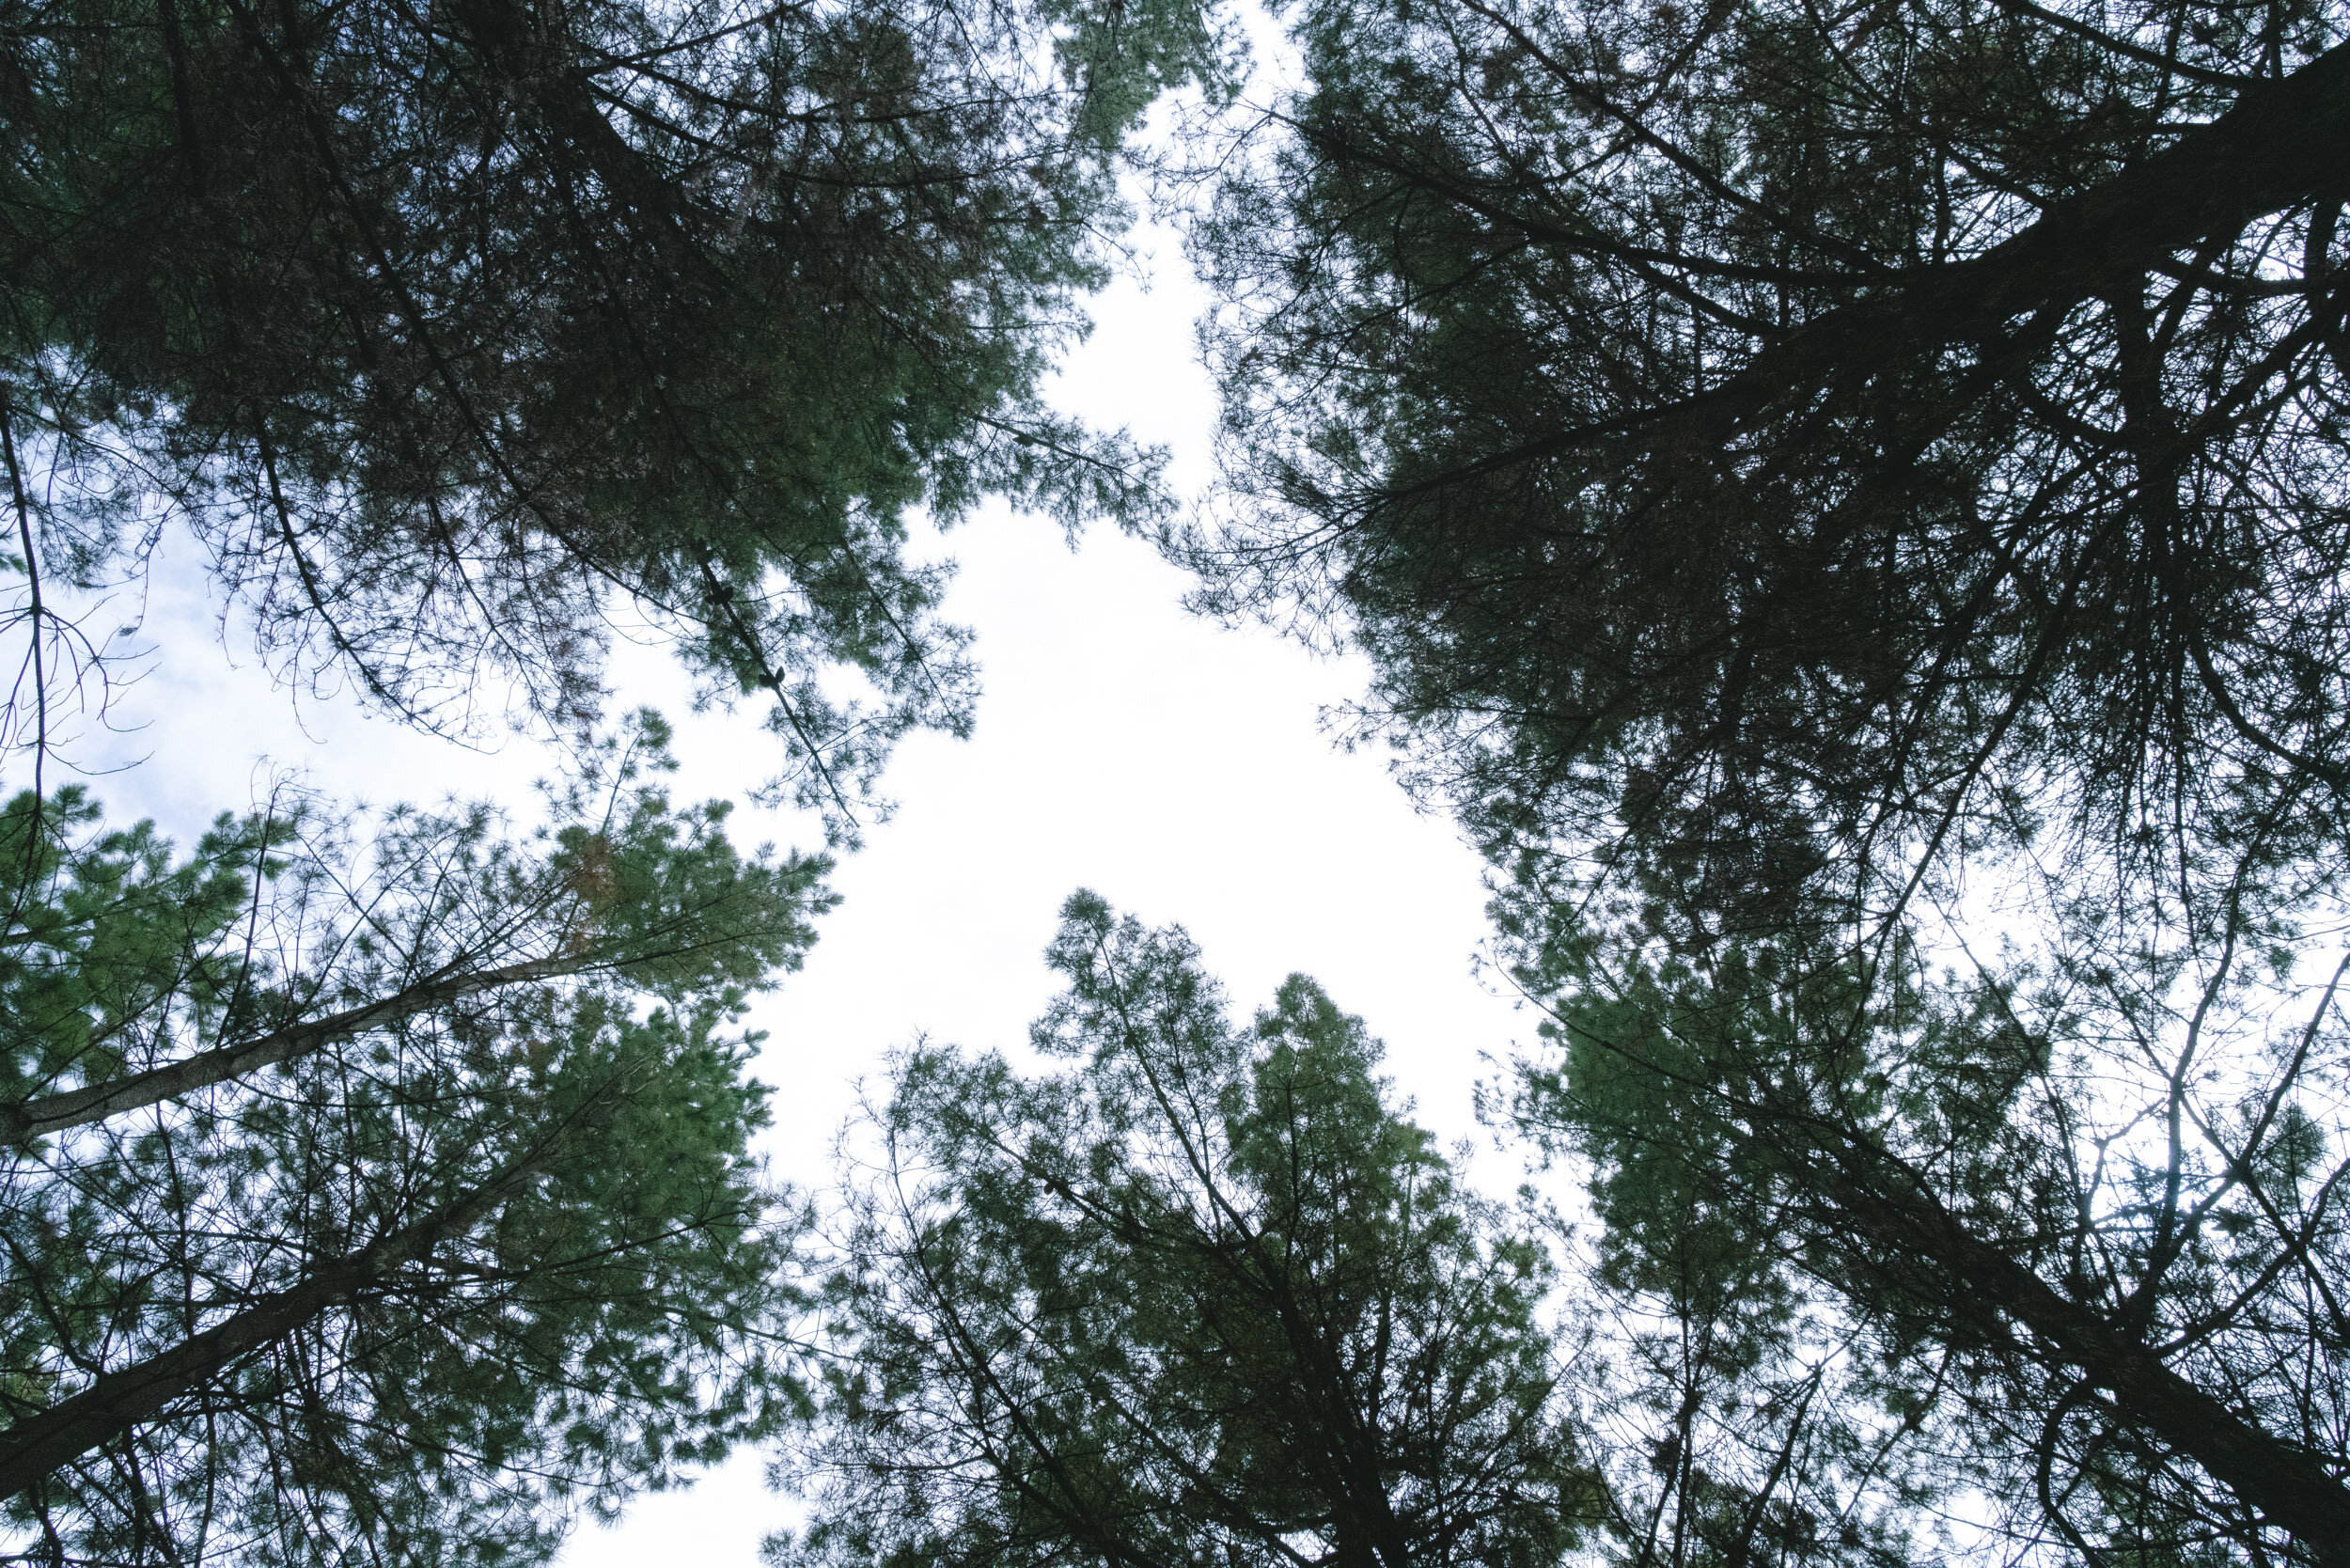 Have you ever just looked up when you are surrounded by pine trees?